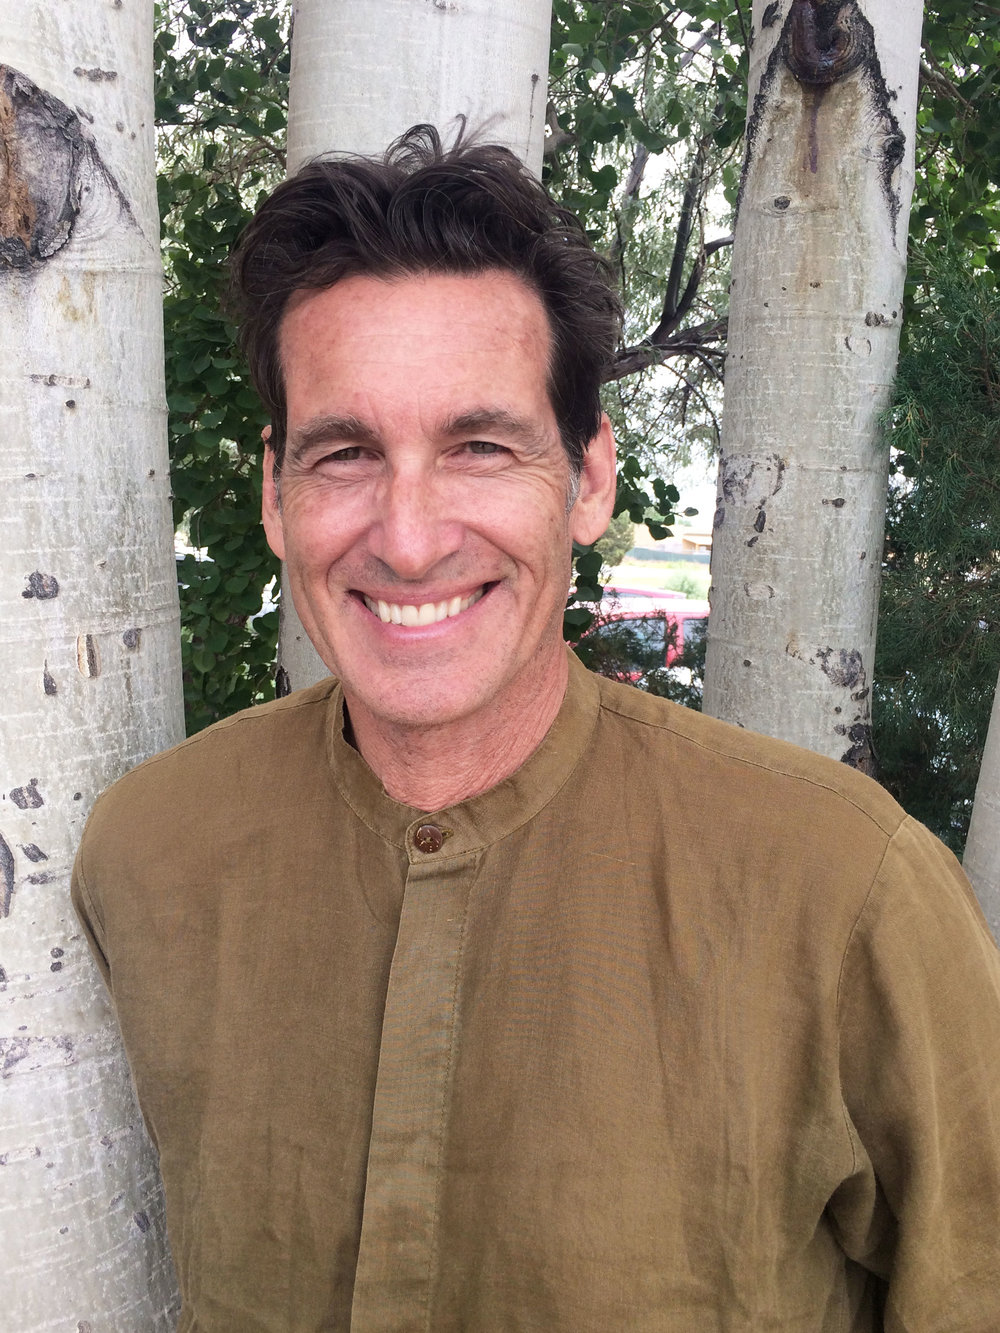 Taos Whole Health Integrative Care - Bill Curry